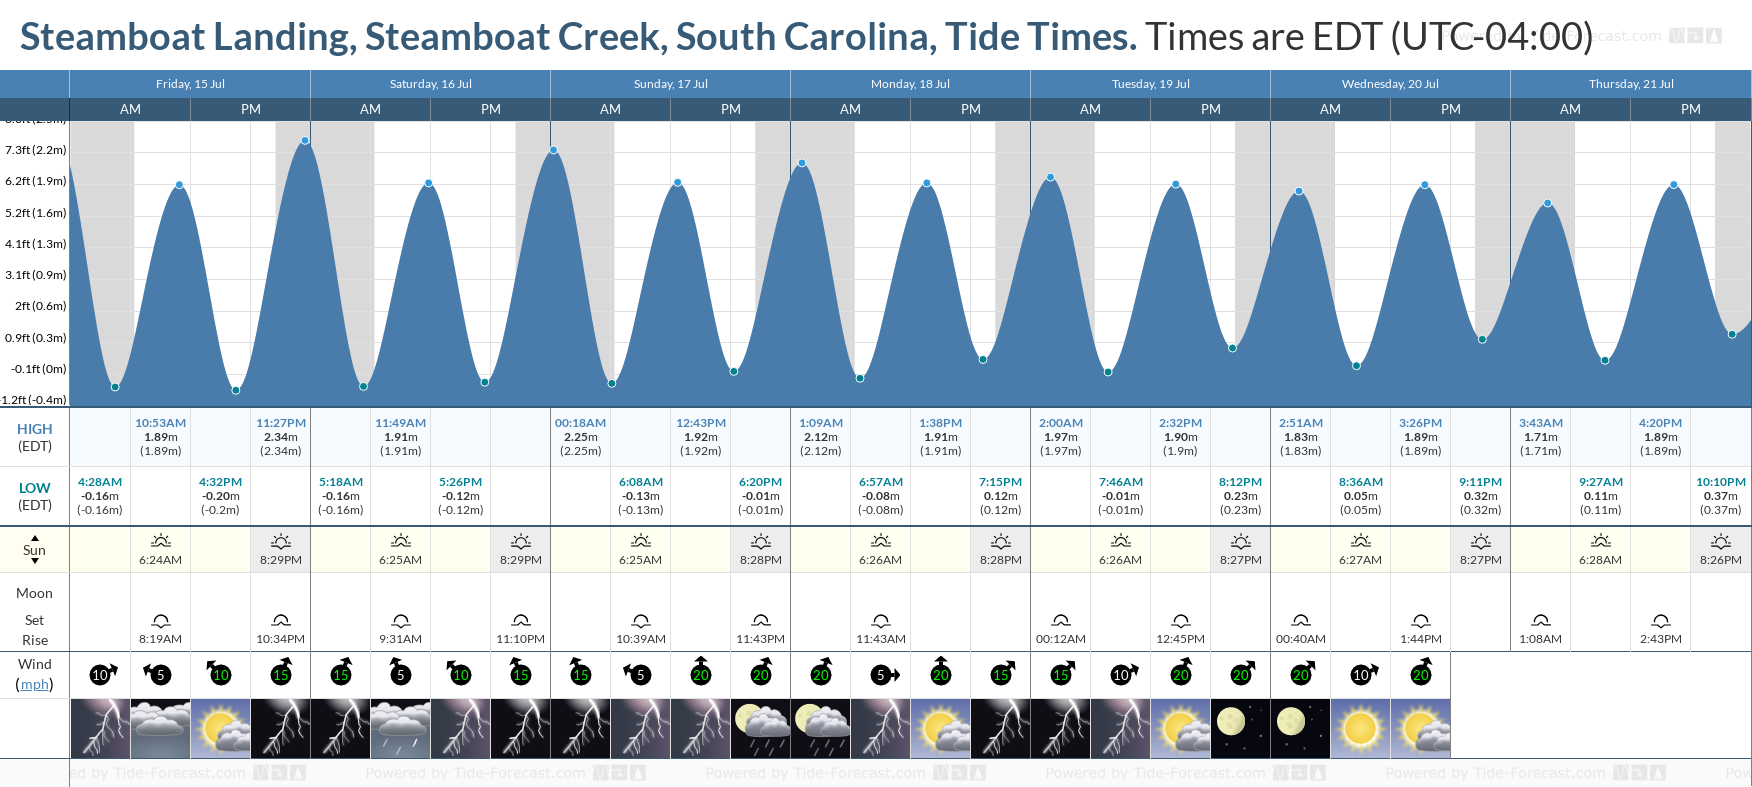 Steamboat Landing, Steamboat Creek, South Carolina Tide Chart including high and low tide tide times for the next 7 days